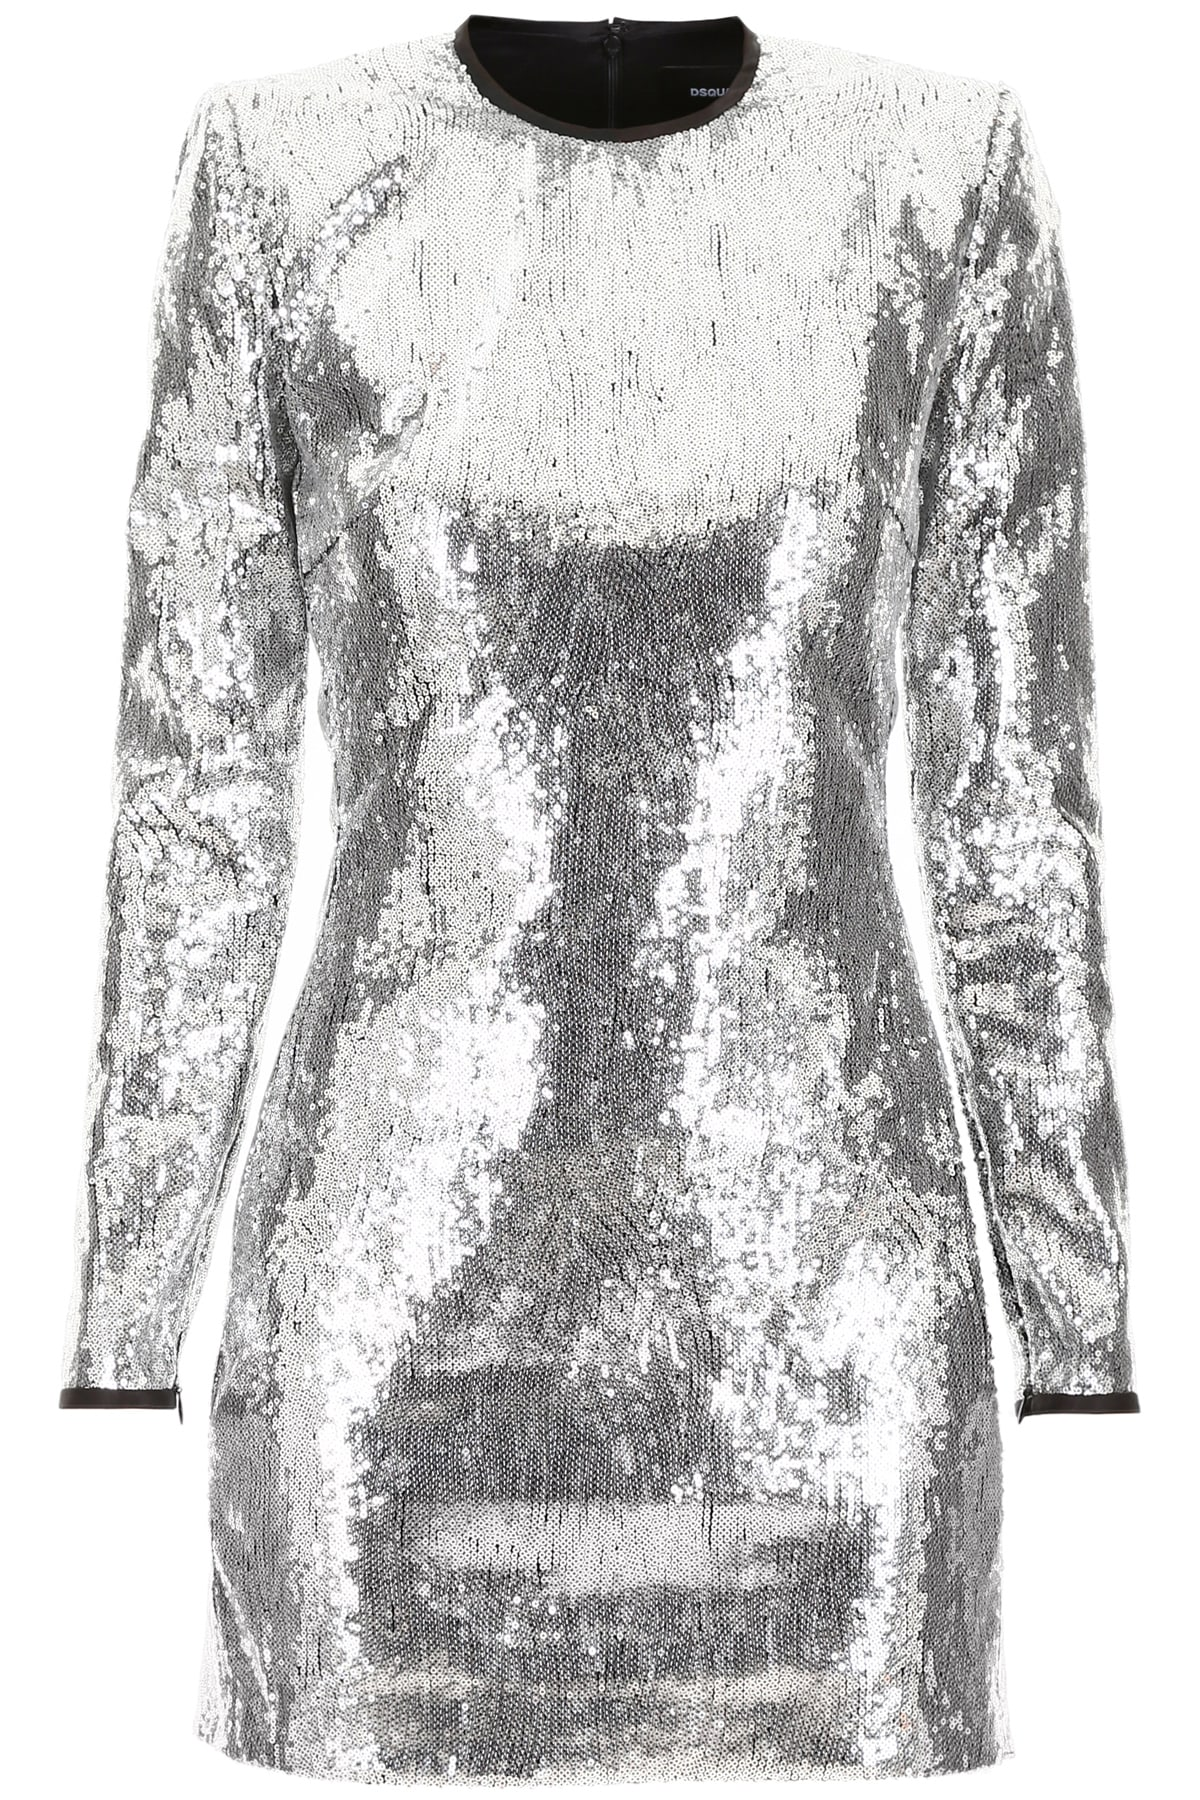 Buy Dsquared2 Sequins Dress online, shop Dsquared2 with free shipping